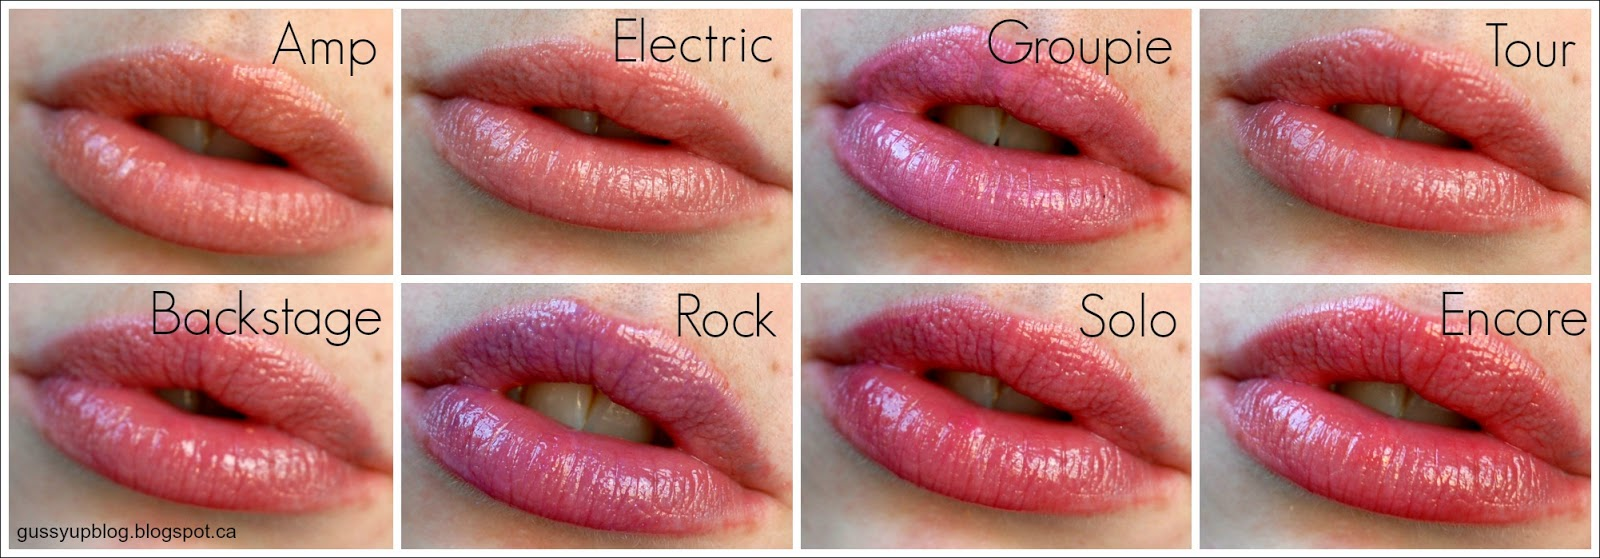 Lorac, Rockin' Red Hot Limited Edition 8 Mini Lip Gloss Collection, Swatches